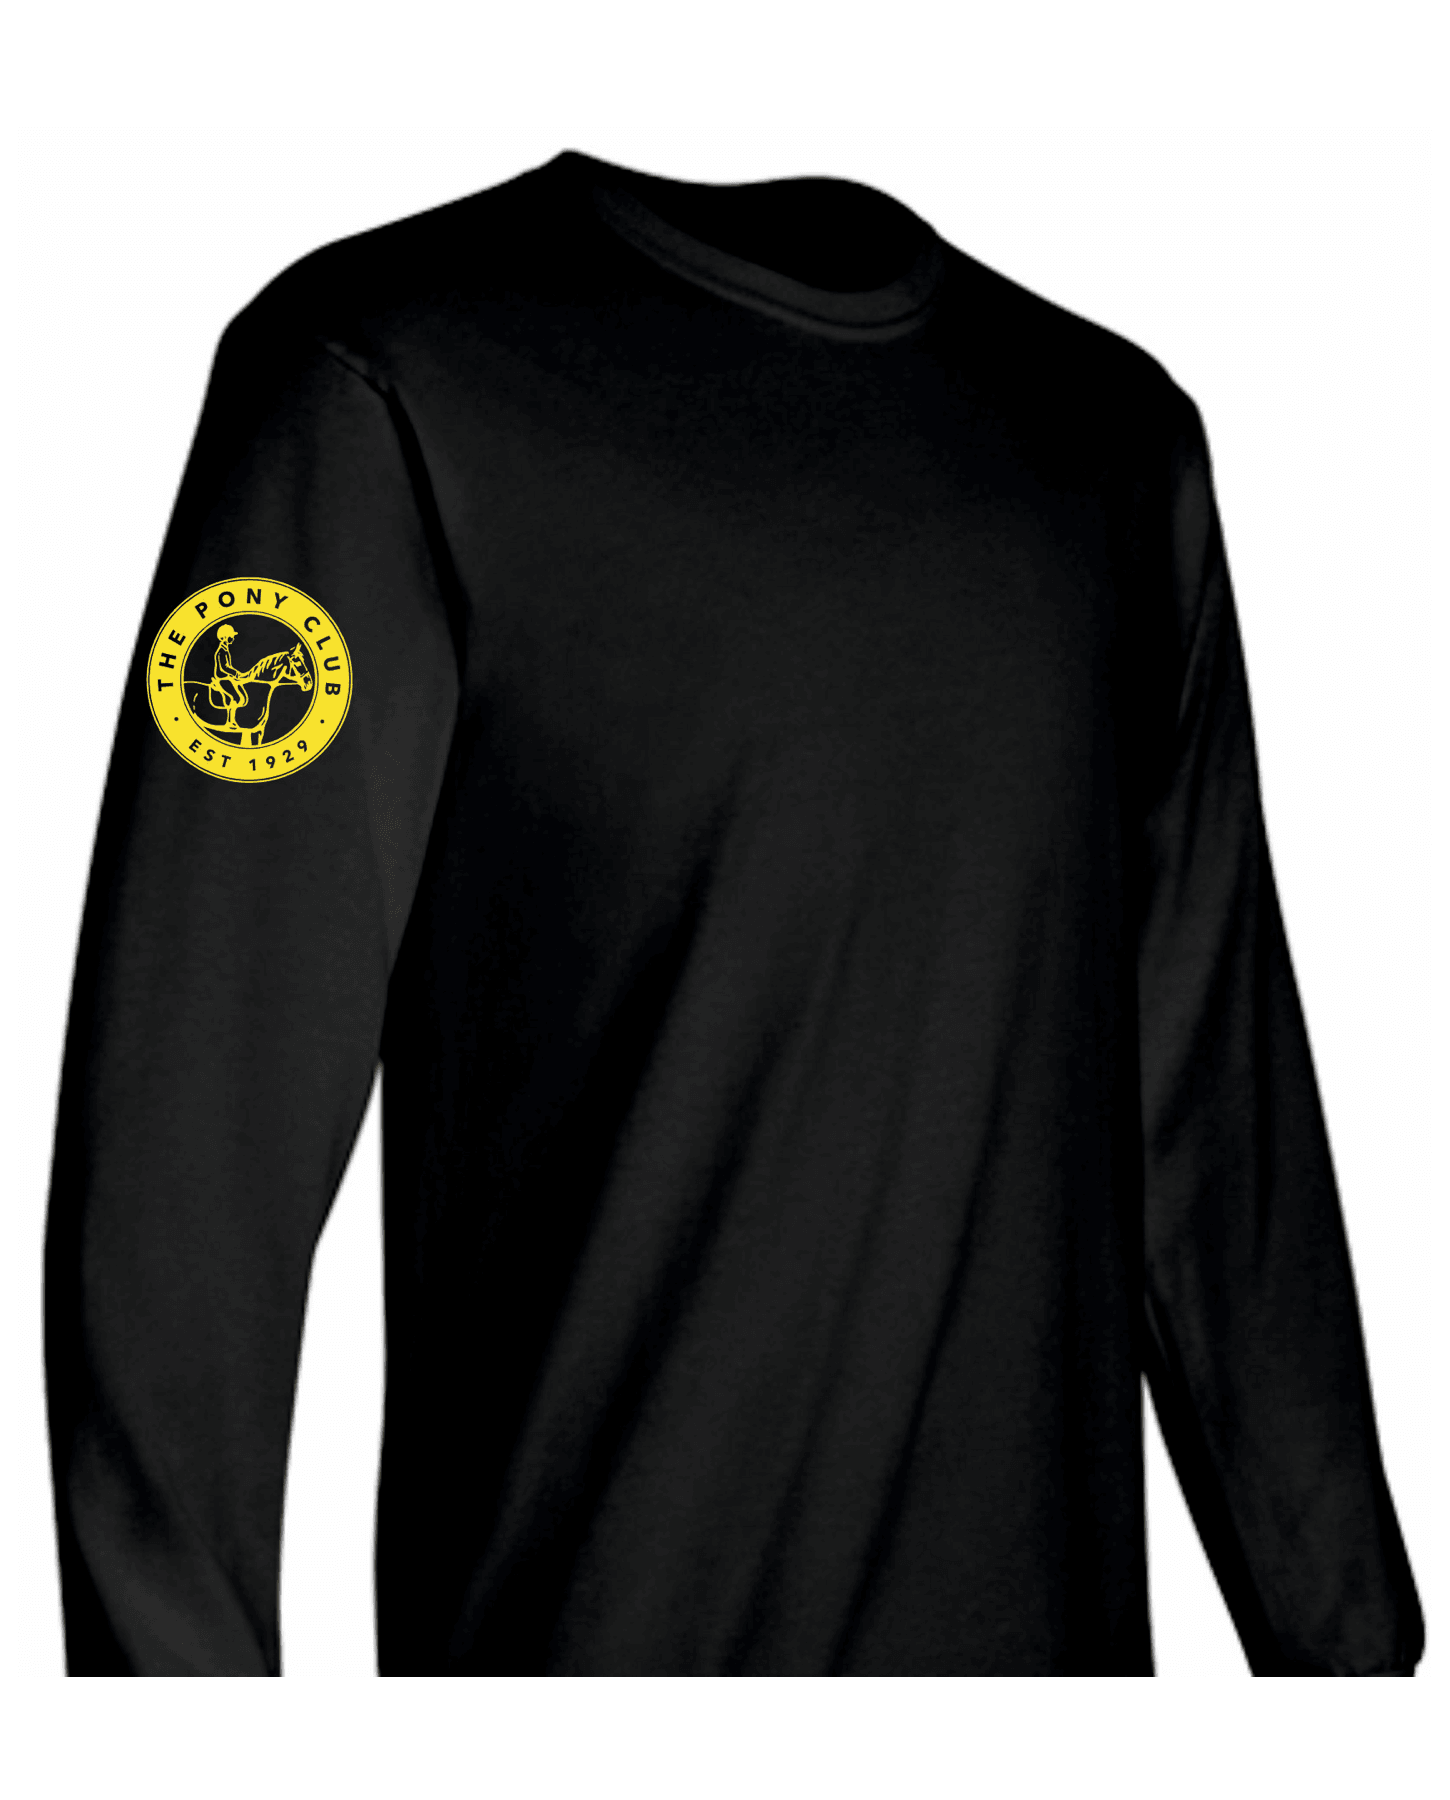 Littleport & District Pony Club – Long Sleeve Tee Kids